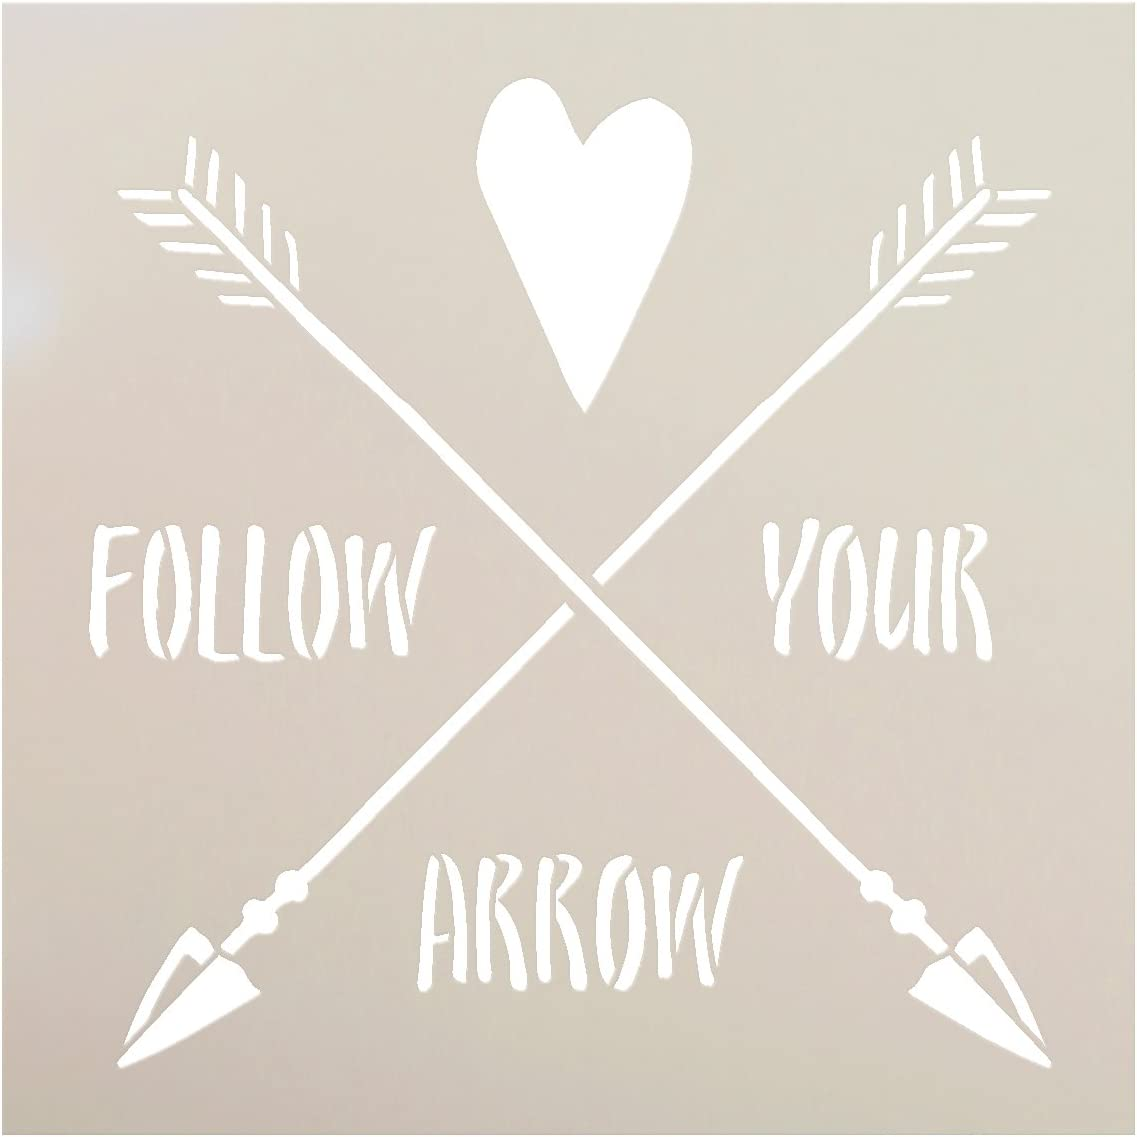 ARROW STENCIL The Artful Stencil WEDDING SIGN STENCIL